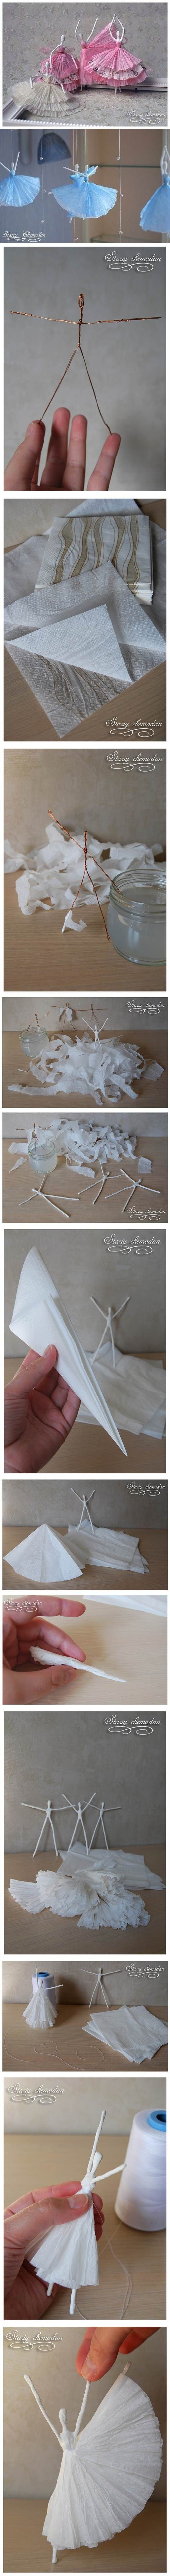 Dont forget to follow me!!!! DIY Napkin Paper Ballerina.